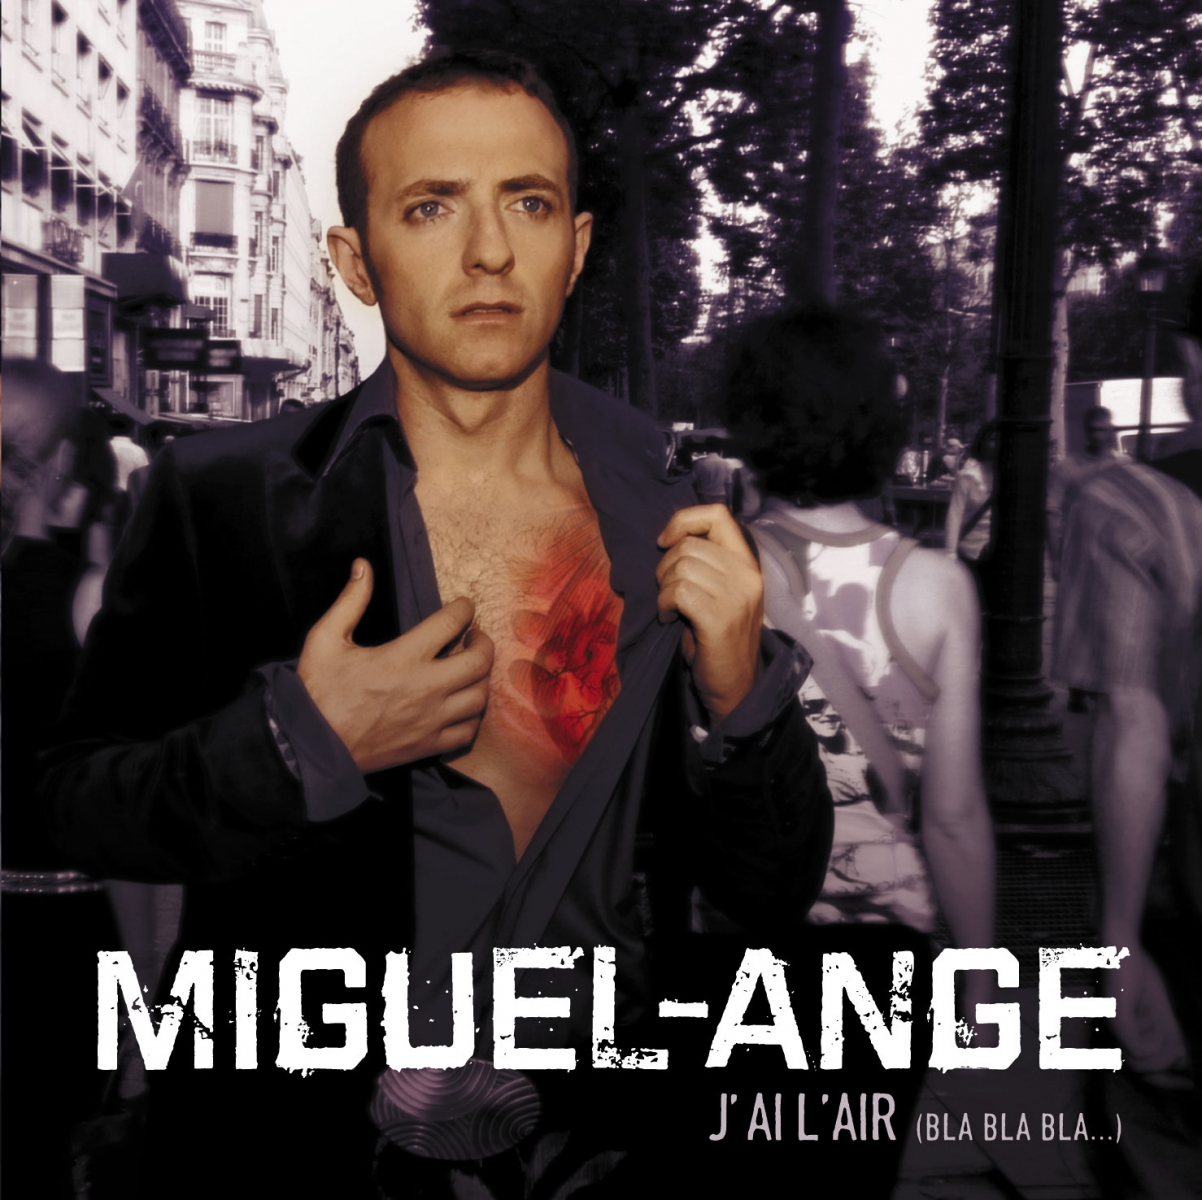 Miguel-ange-02